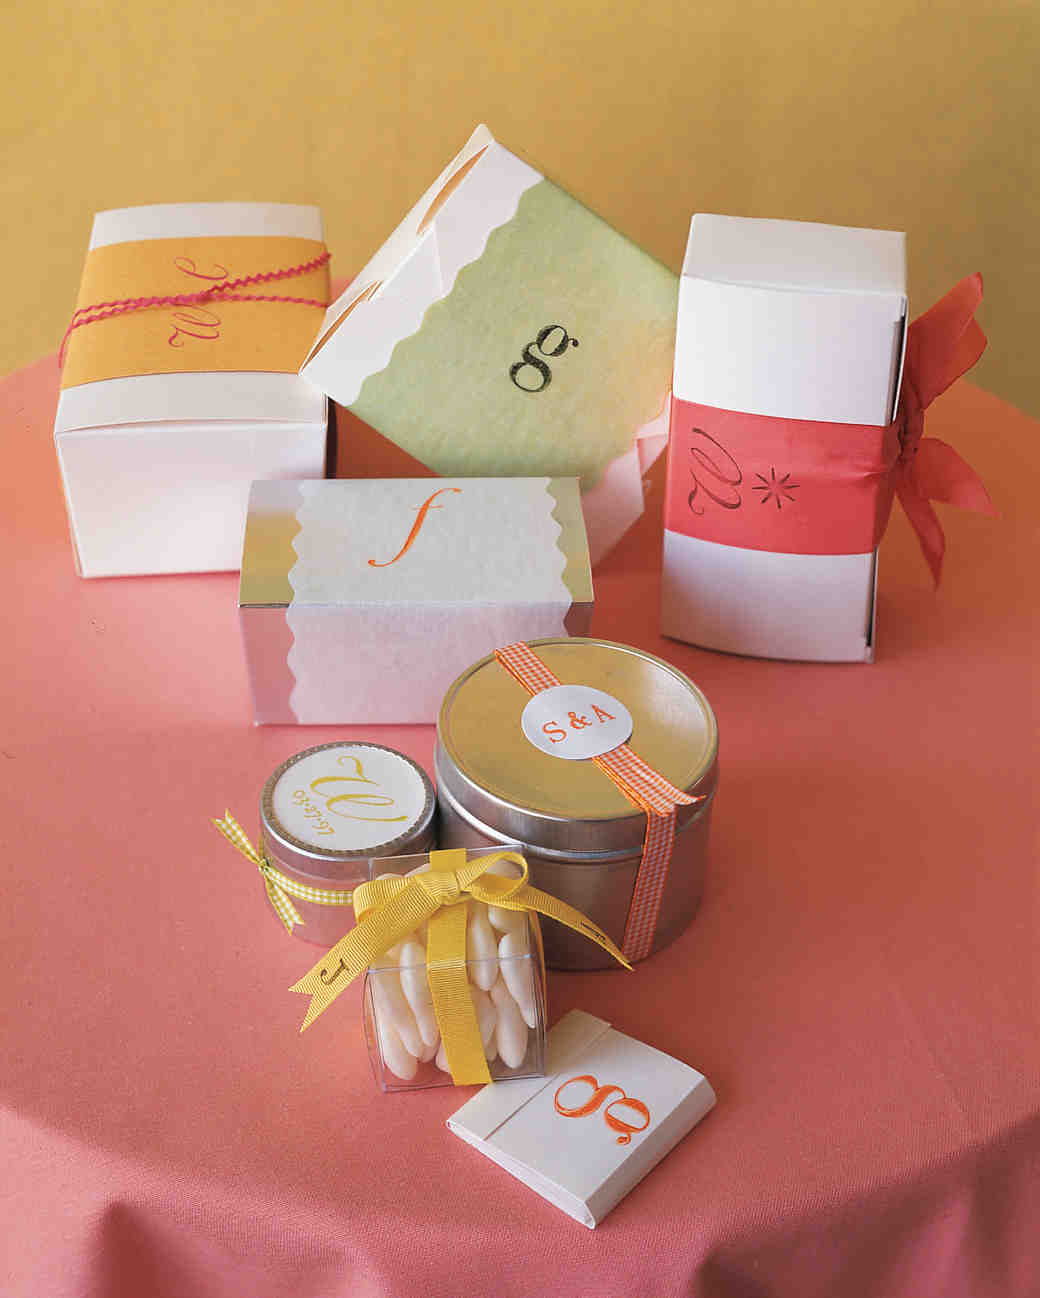 diy-favor-boxes-personlized-favors-sumfall97-0715.jpg